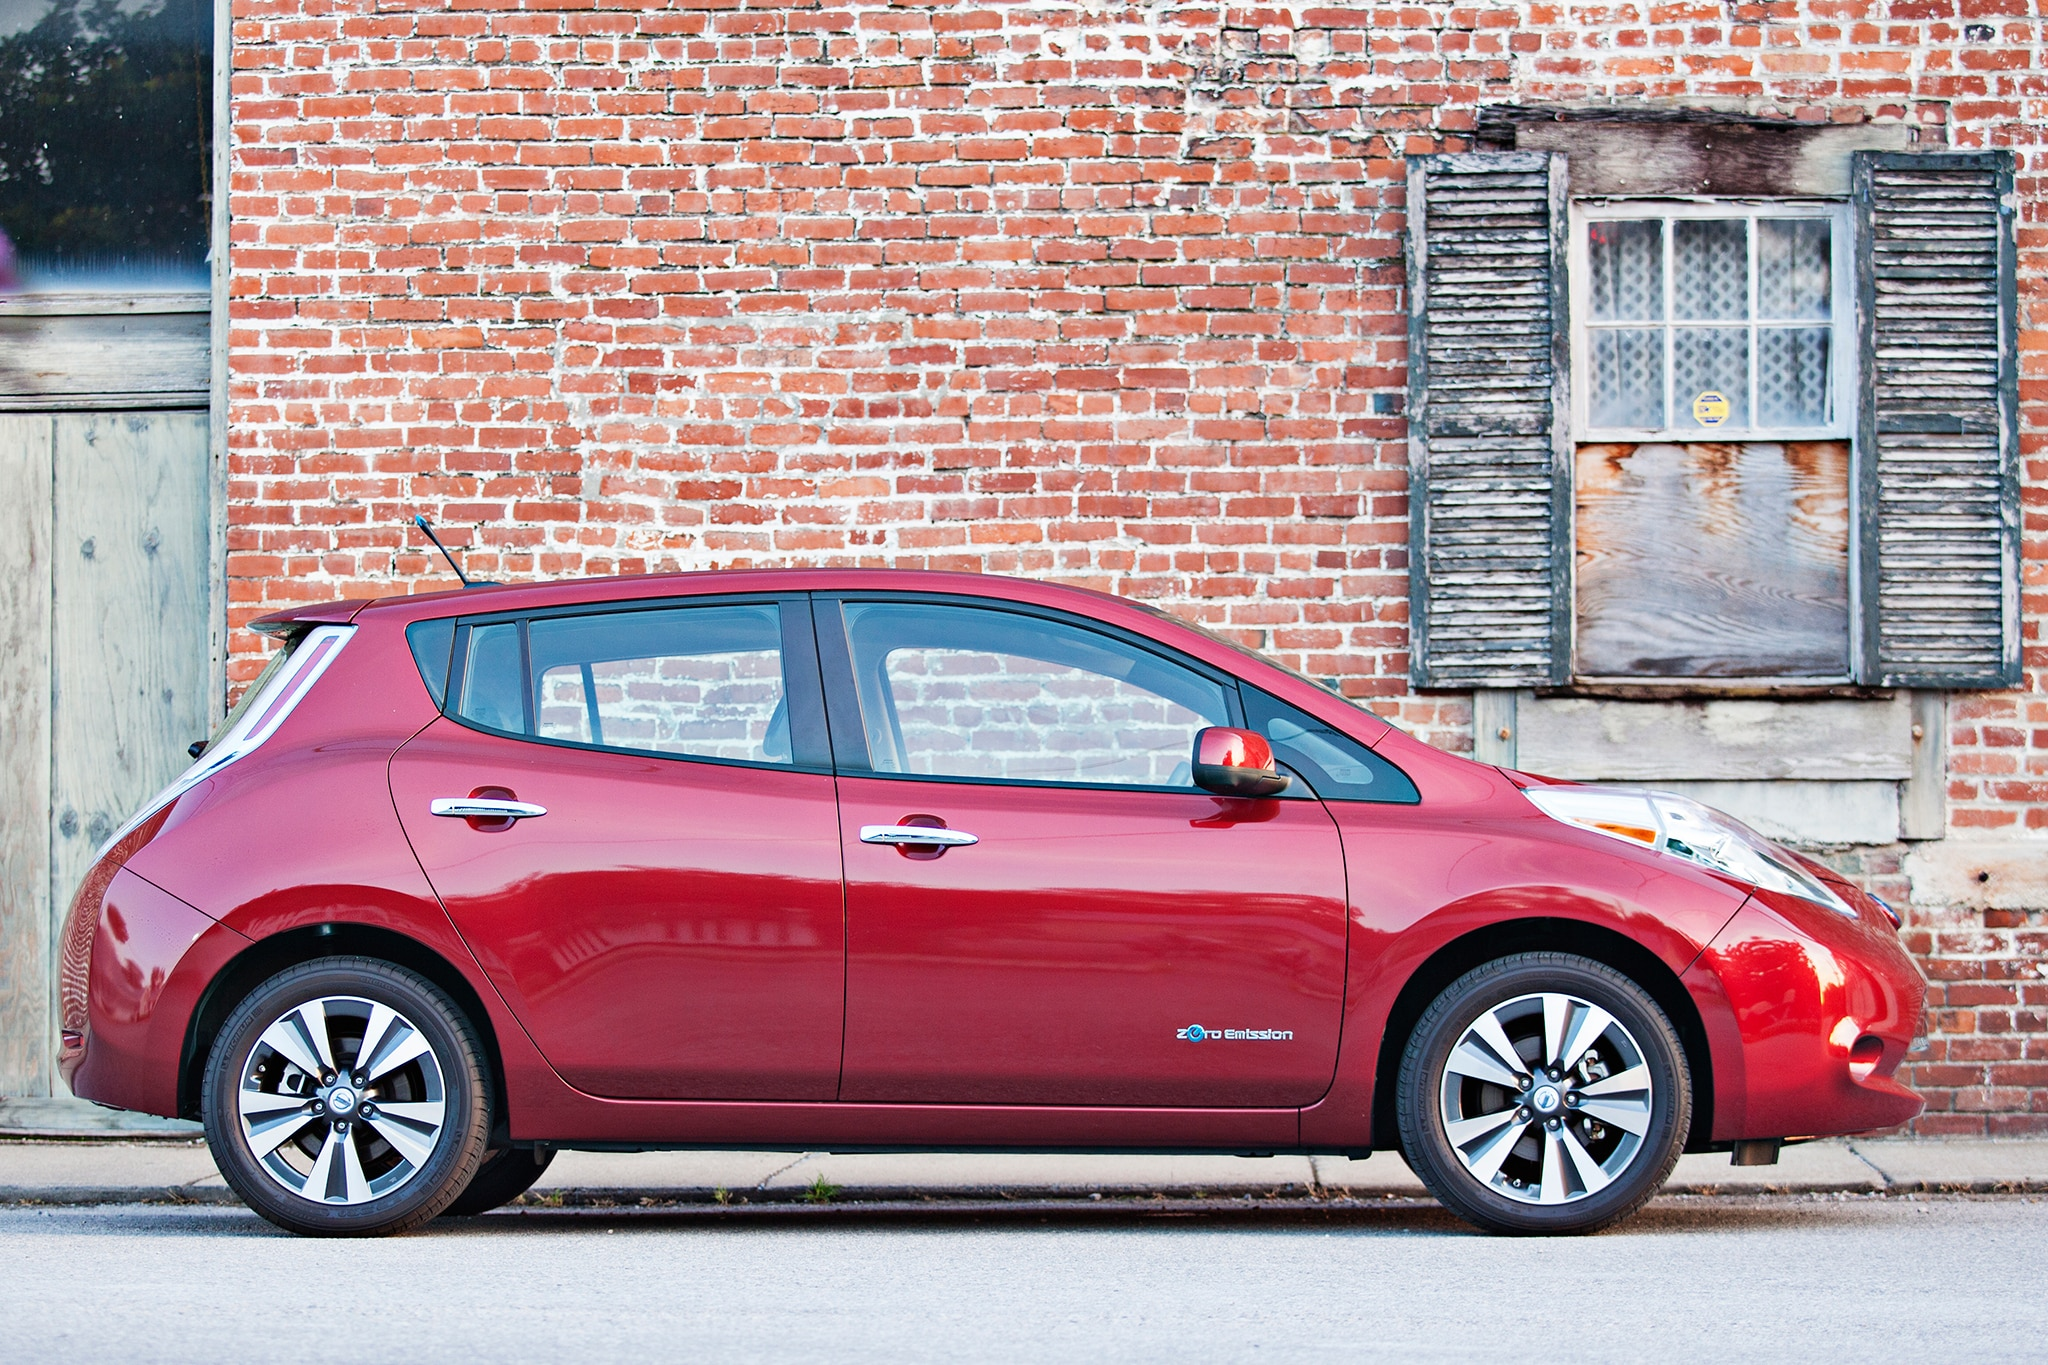 2014 Nissan LEAF Side View1